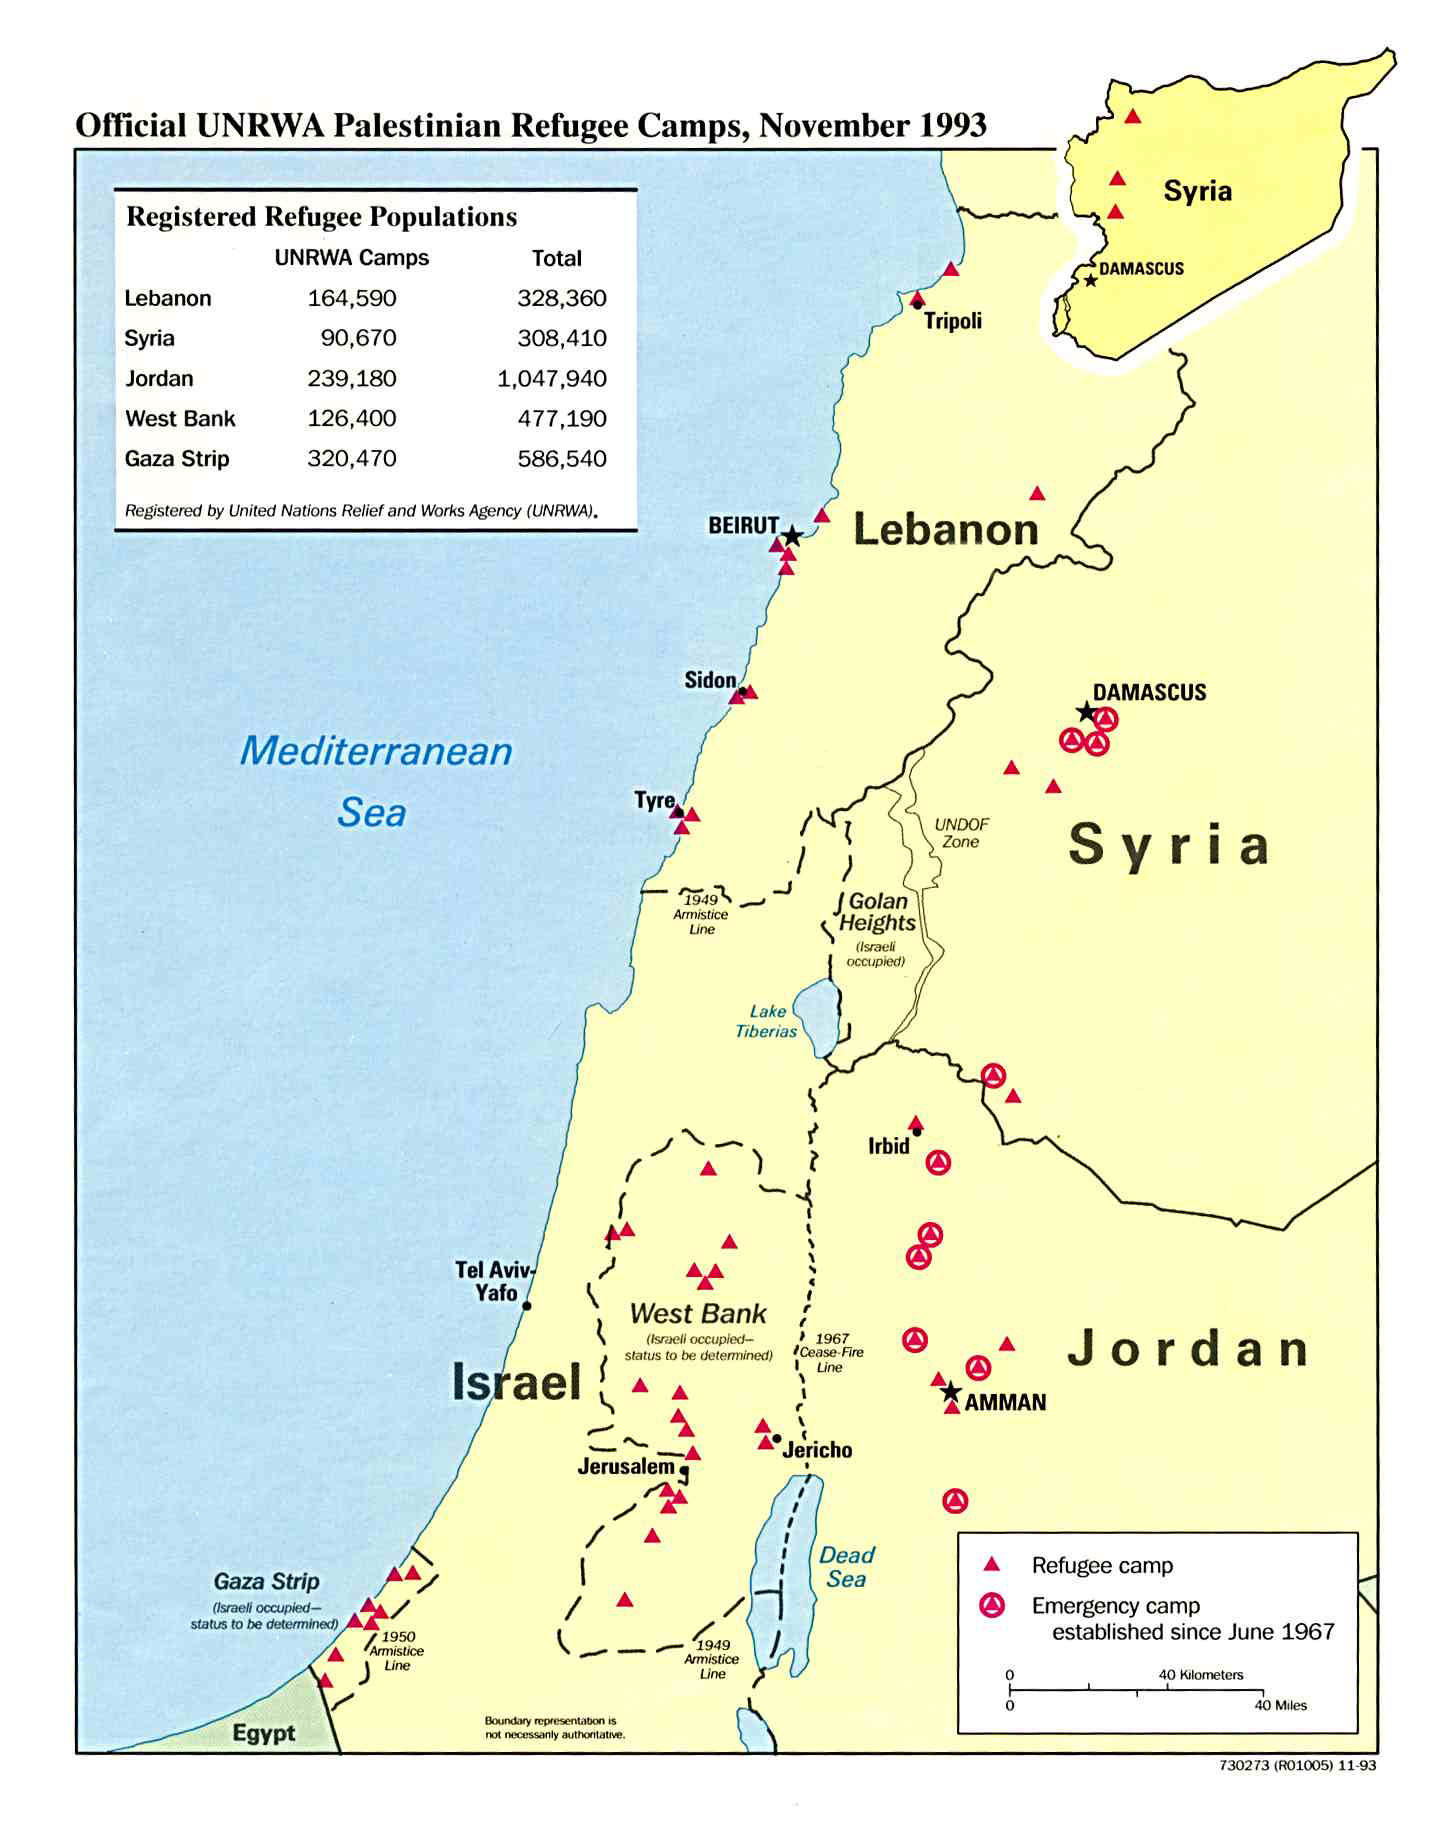 http://www.vidiani.com/maps/maps_of_asia/maps_of_palestine/detailed_political_map_of_palestine.jpg